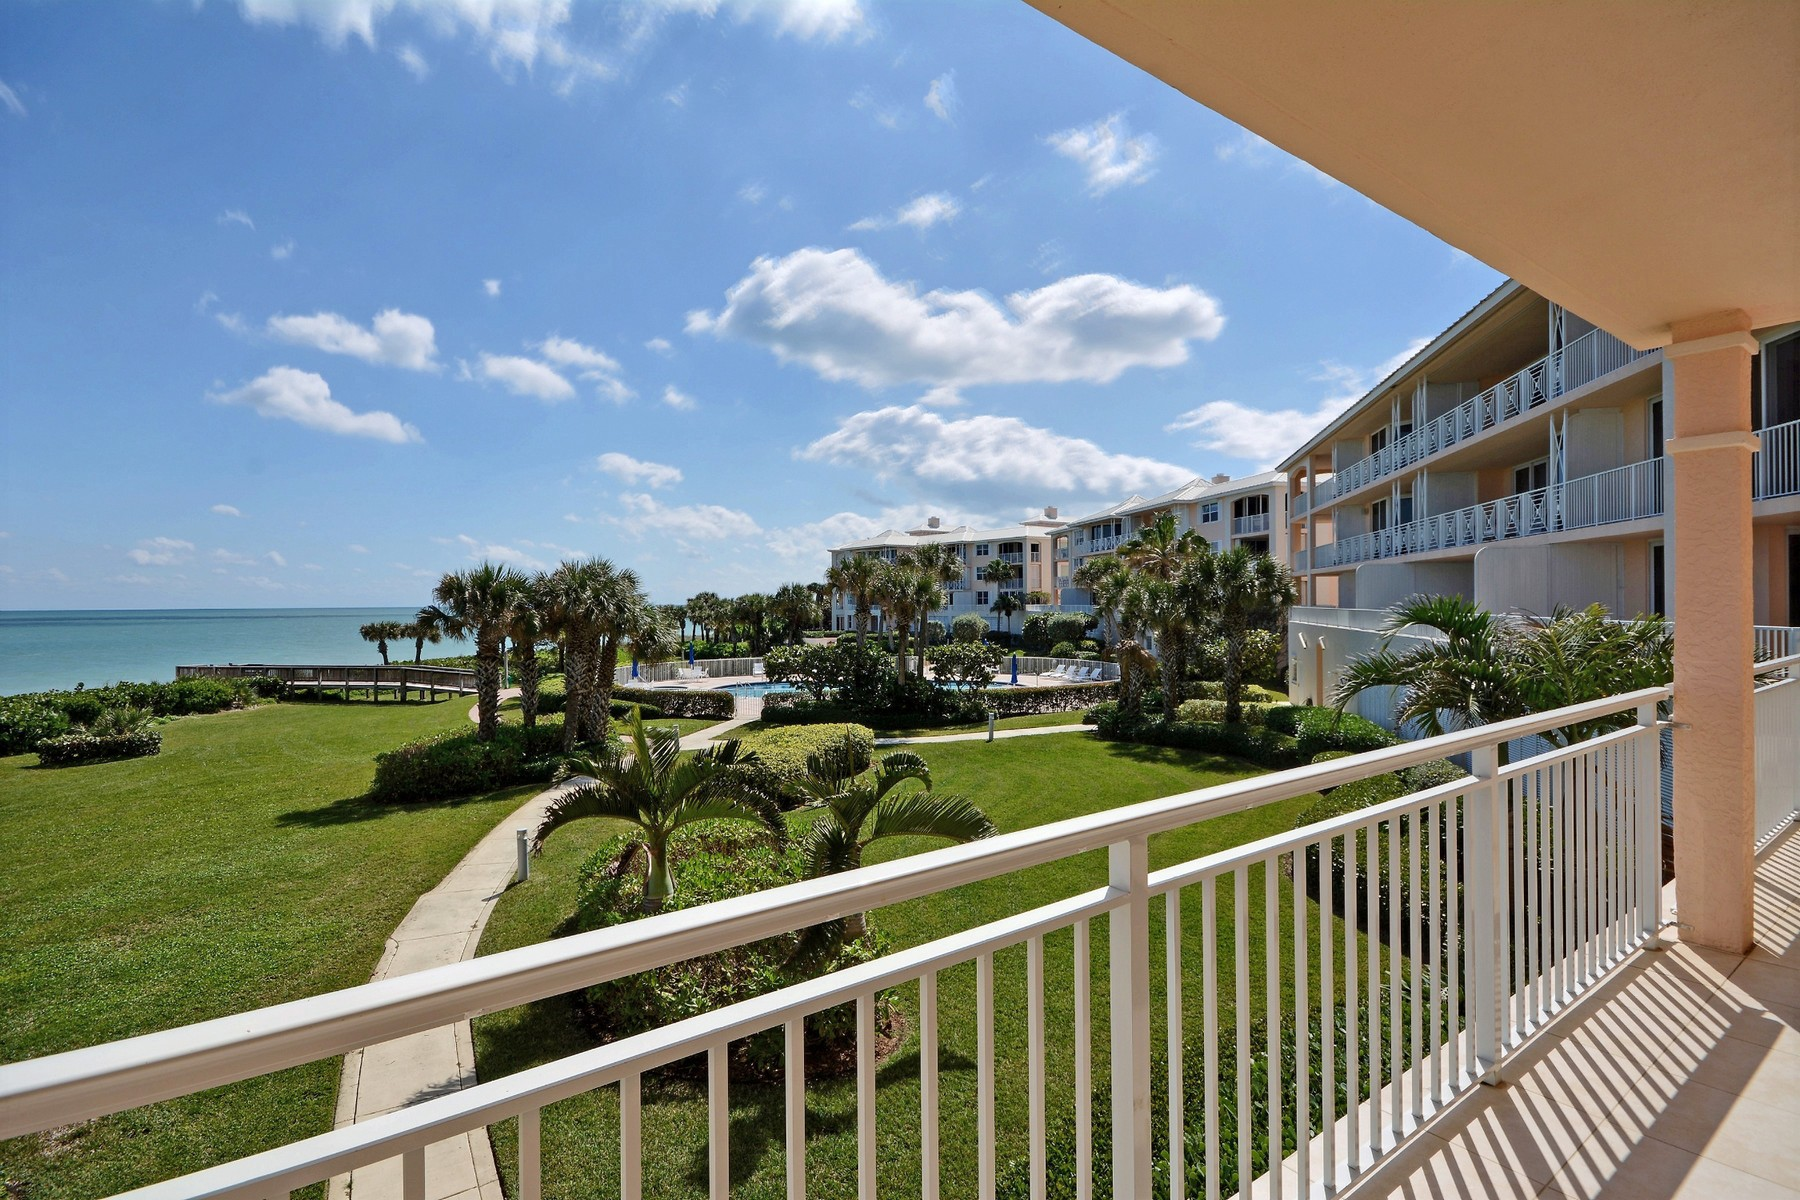 Condominium for Sale at Stunning Oceanfront Condo in Sea Oaks 8876 N Sea Oaks Way #403 Vero Beach, Florida, 32963 United States